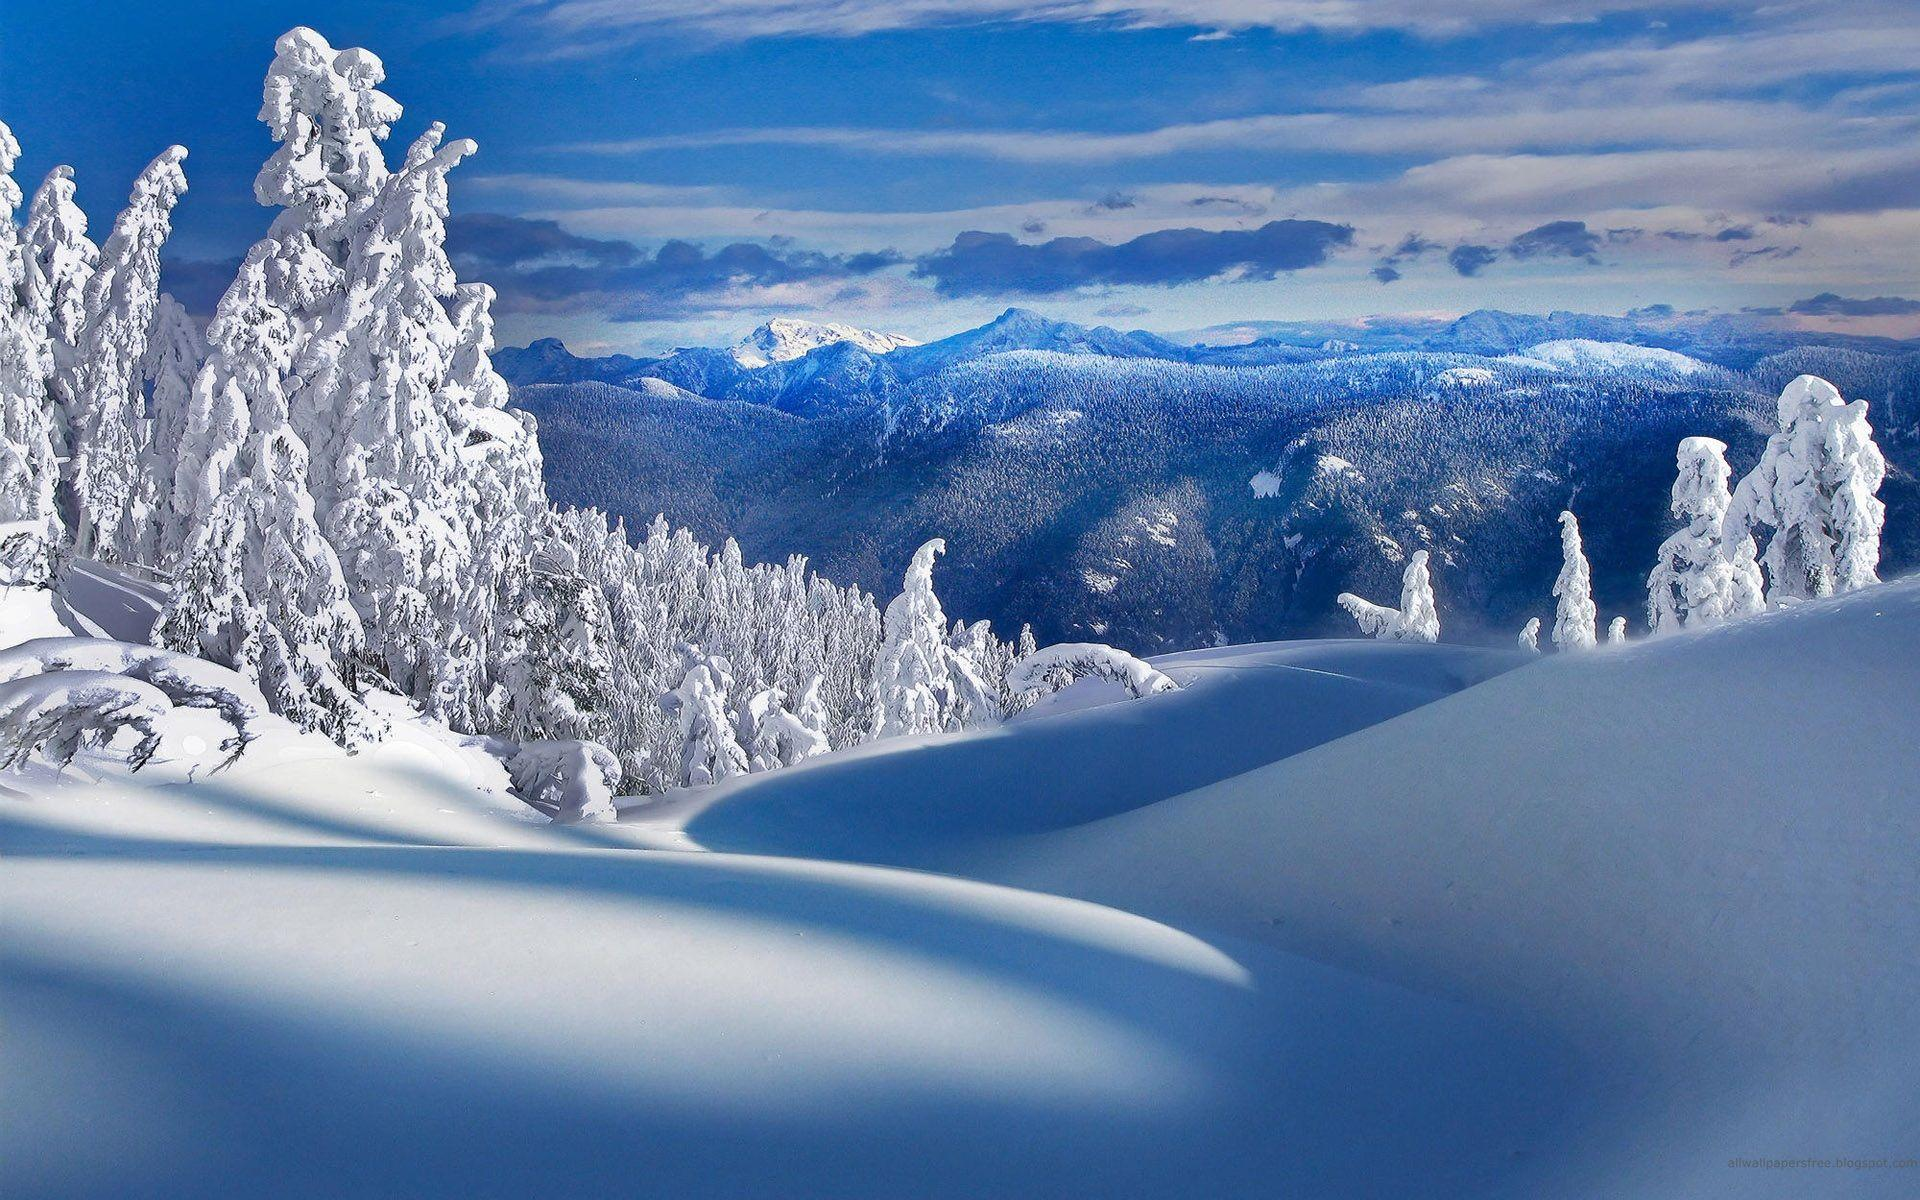 Free Winter Backgrounds Wallpapers - Wallpaper Cave